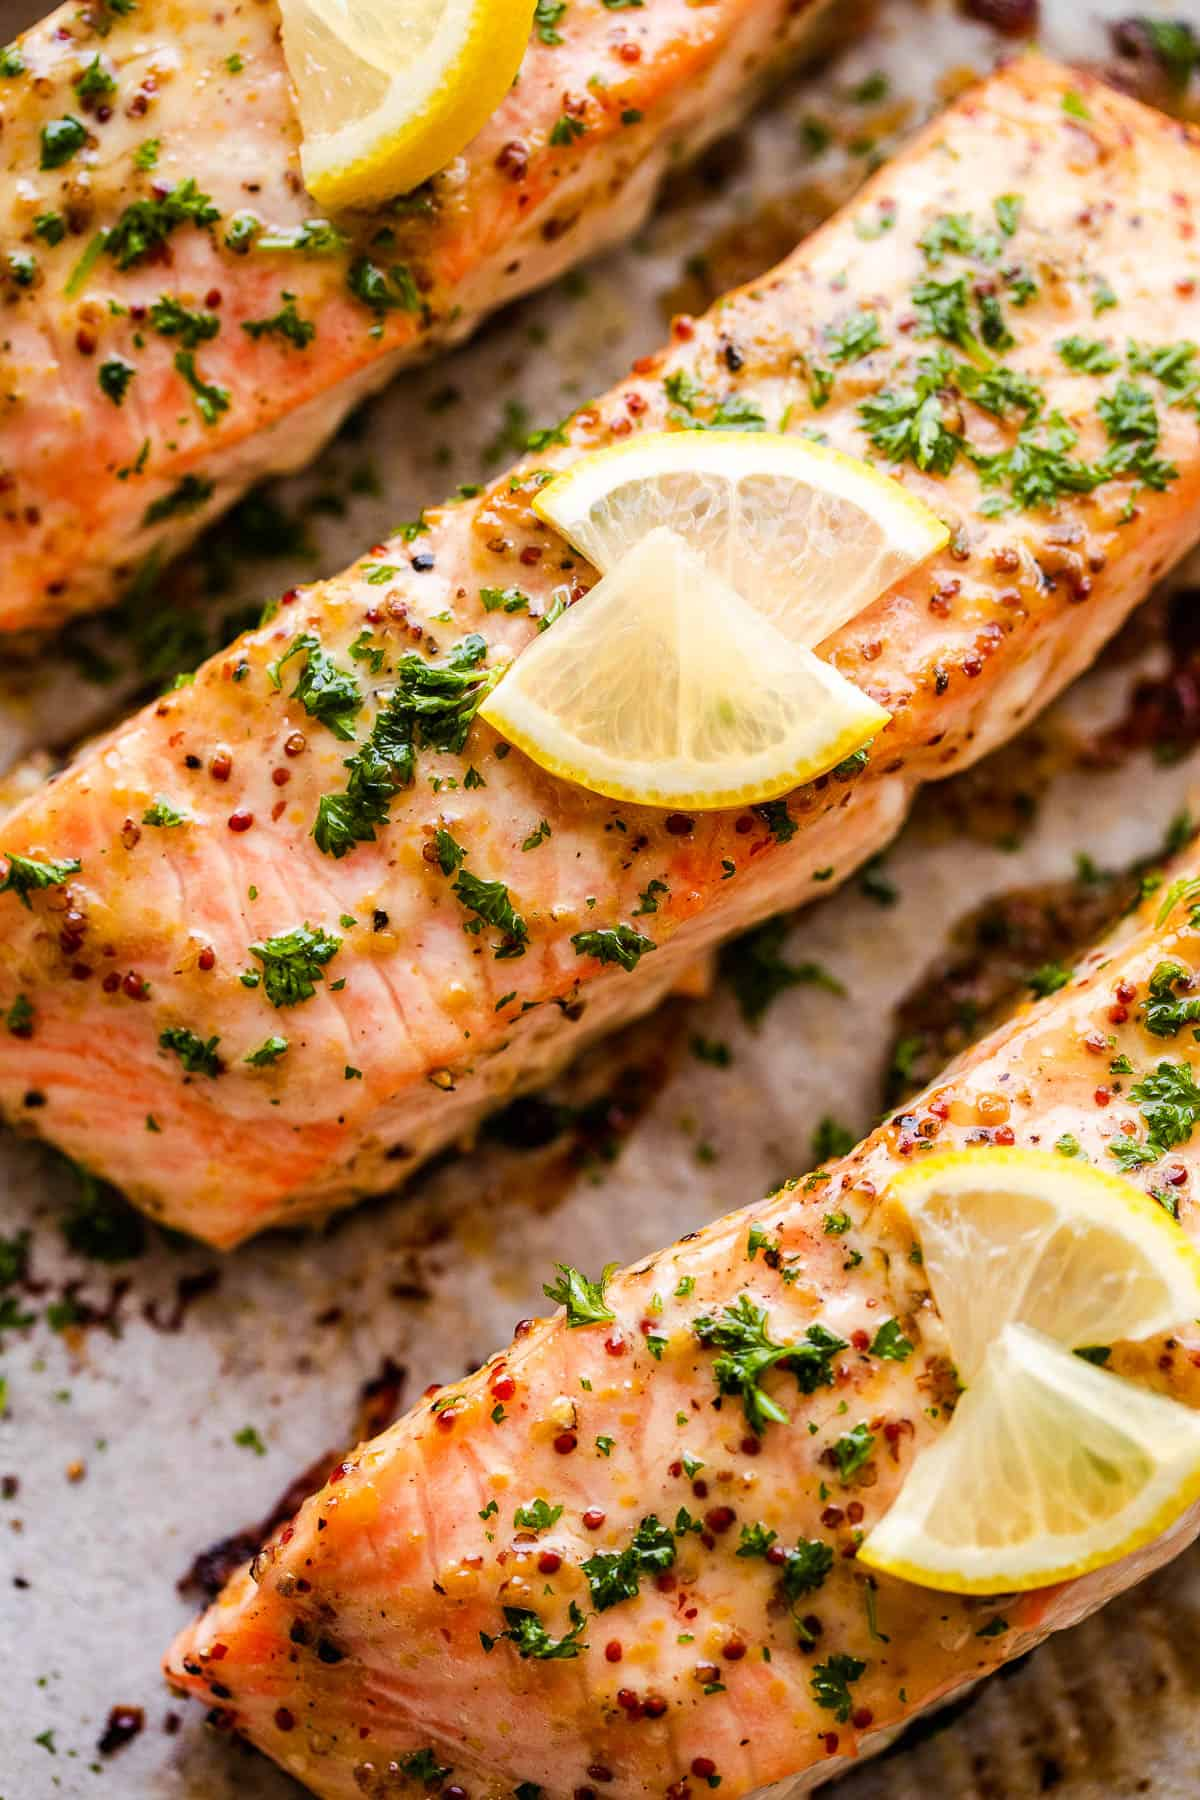 up close photo of maple mustard salmon fillets garnished with parsley and lemon slices